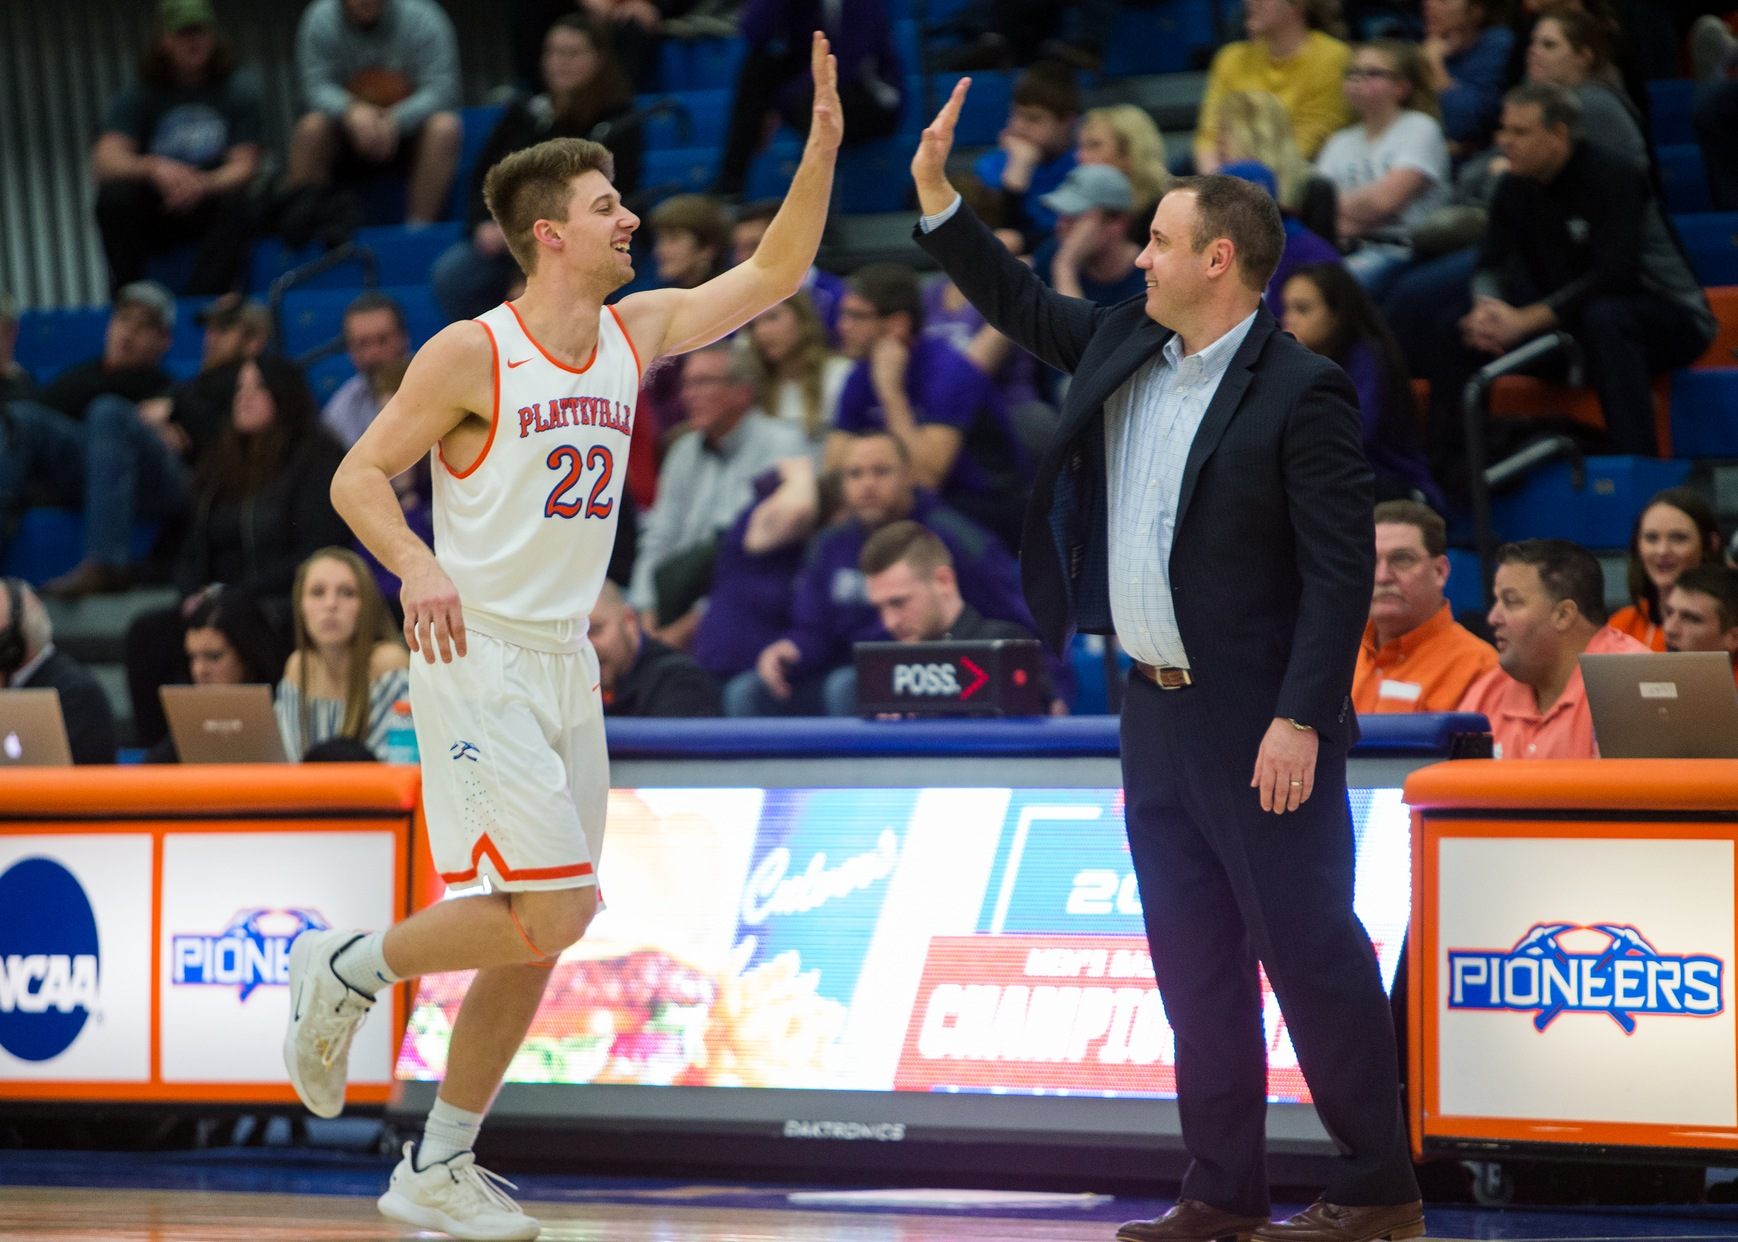 Pioneers advance to WIAC semifinals